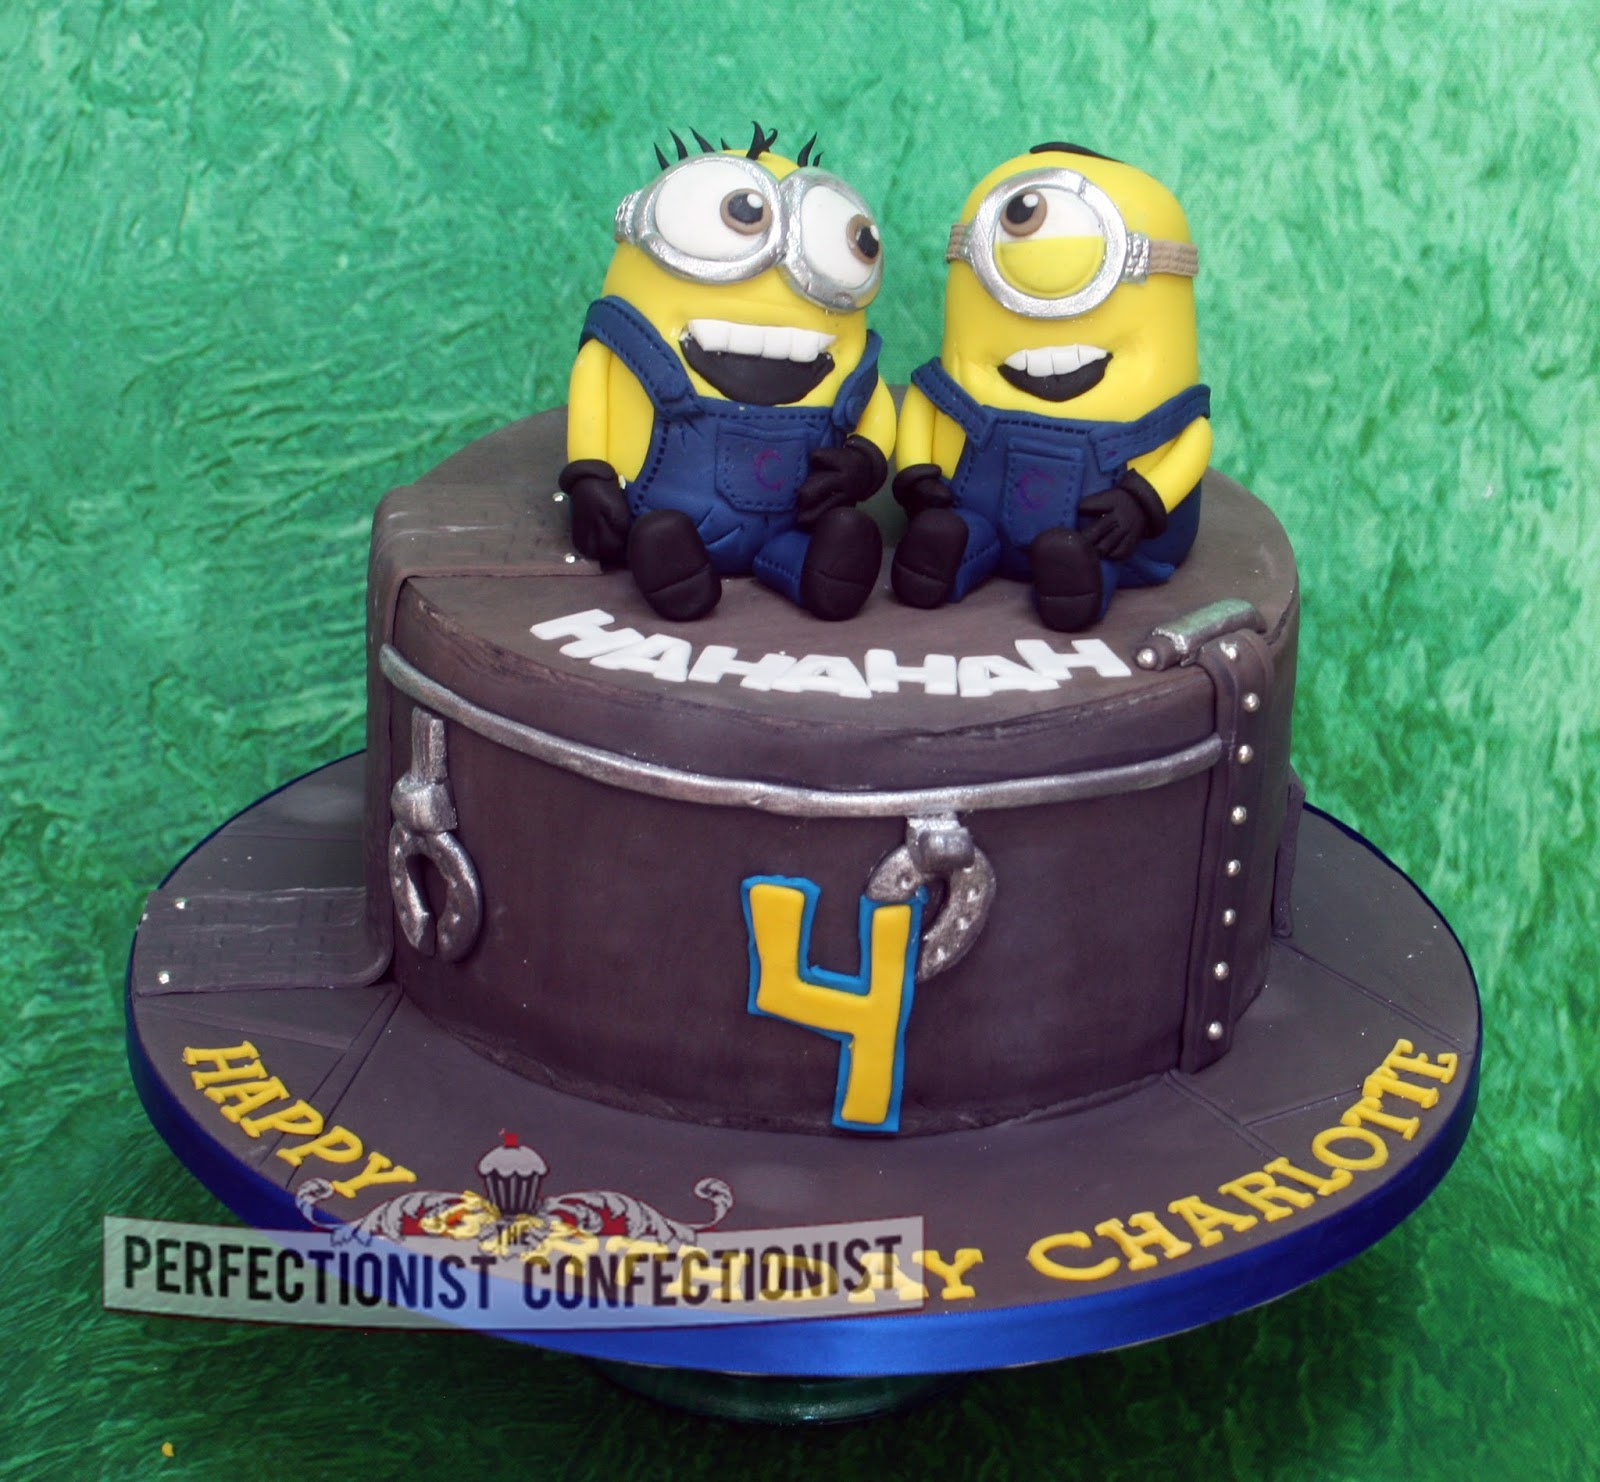 The Perfectionist Confectionist Charlotte Minion Birthday Cake